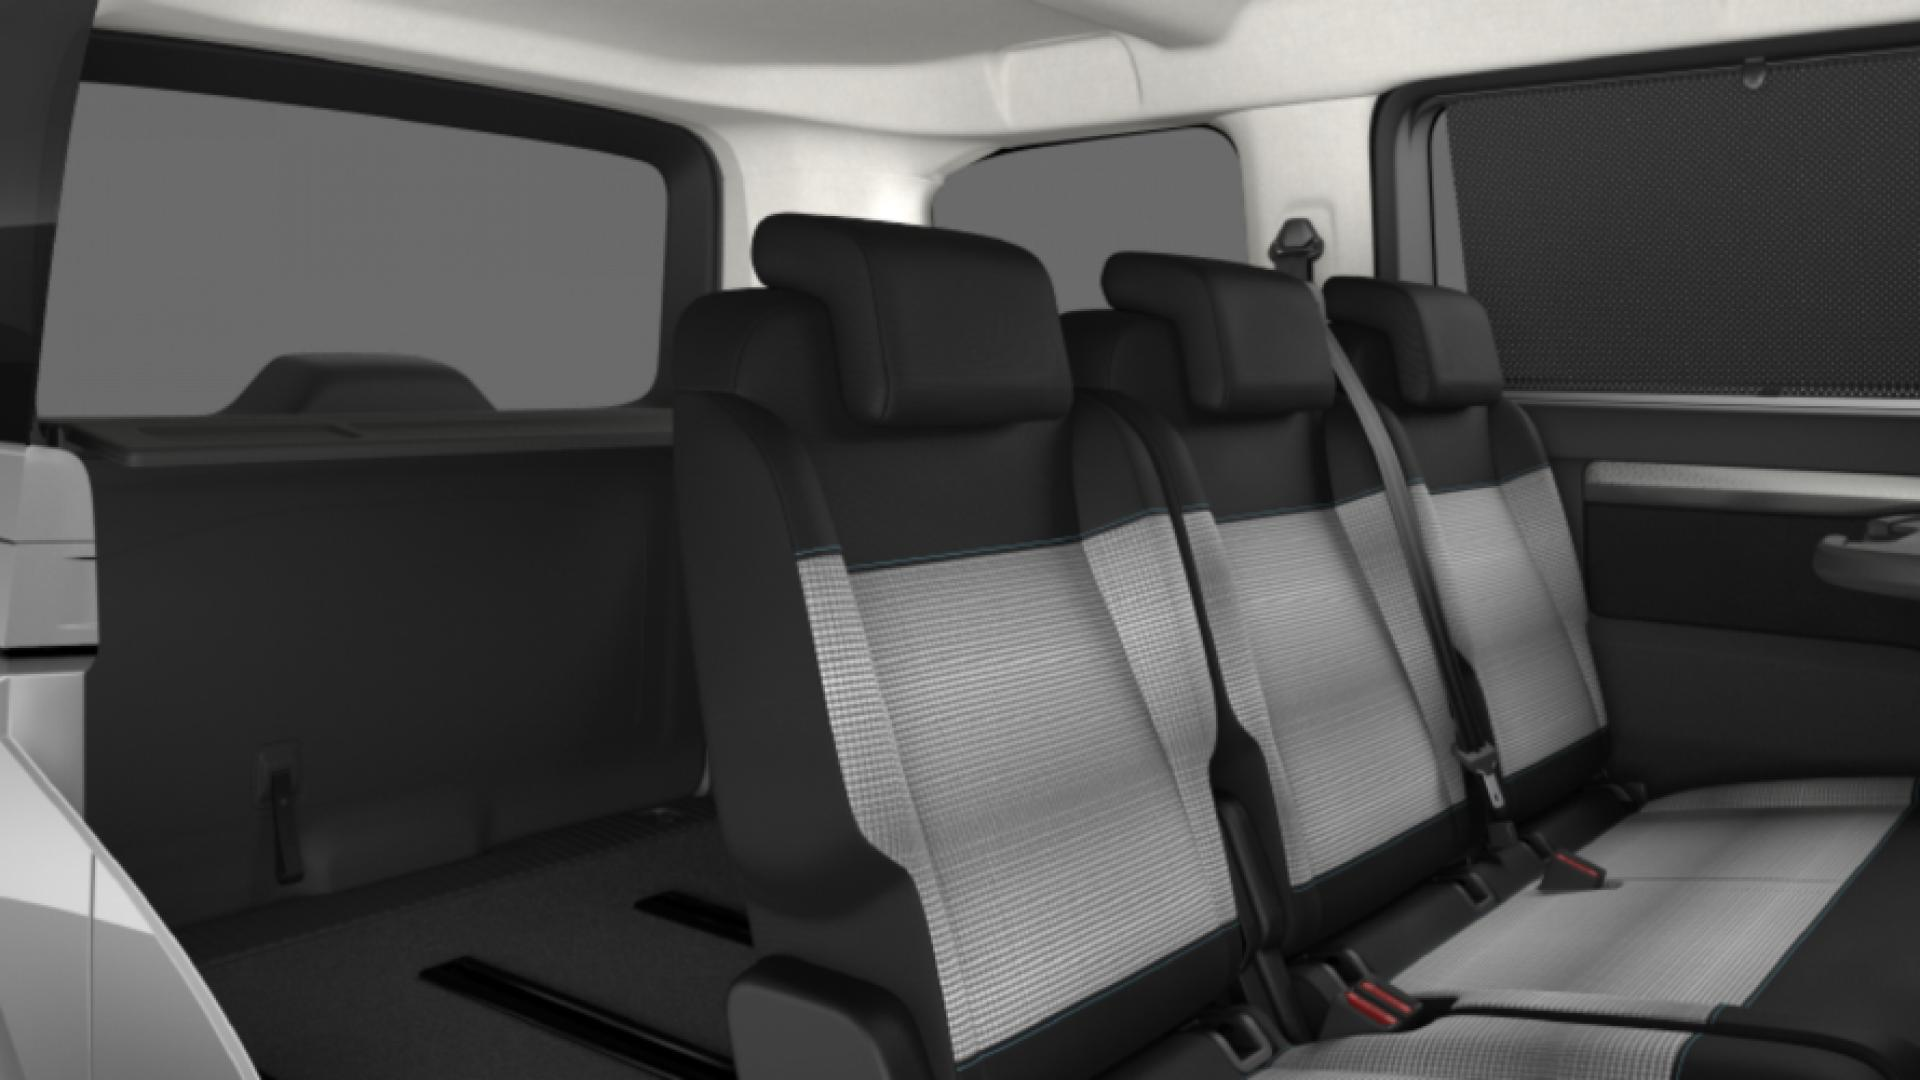 new citroen space tourer estate 2 0 bluehdi 150 feel m 8 seat 5dr robins and day. Black Bedroom Furniture Sets. Home Design Ideas